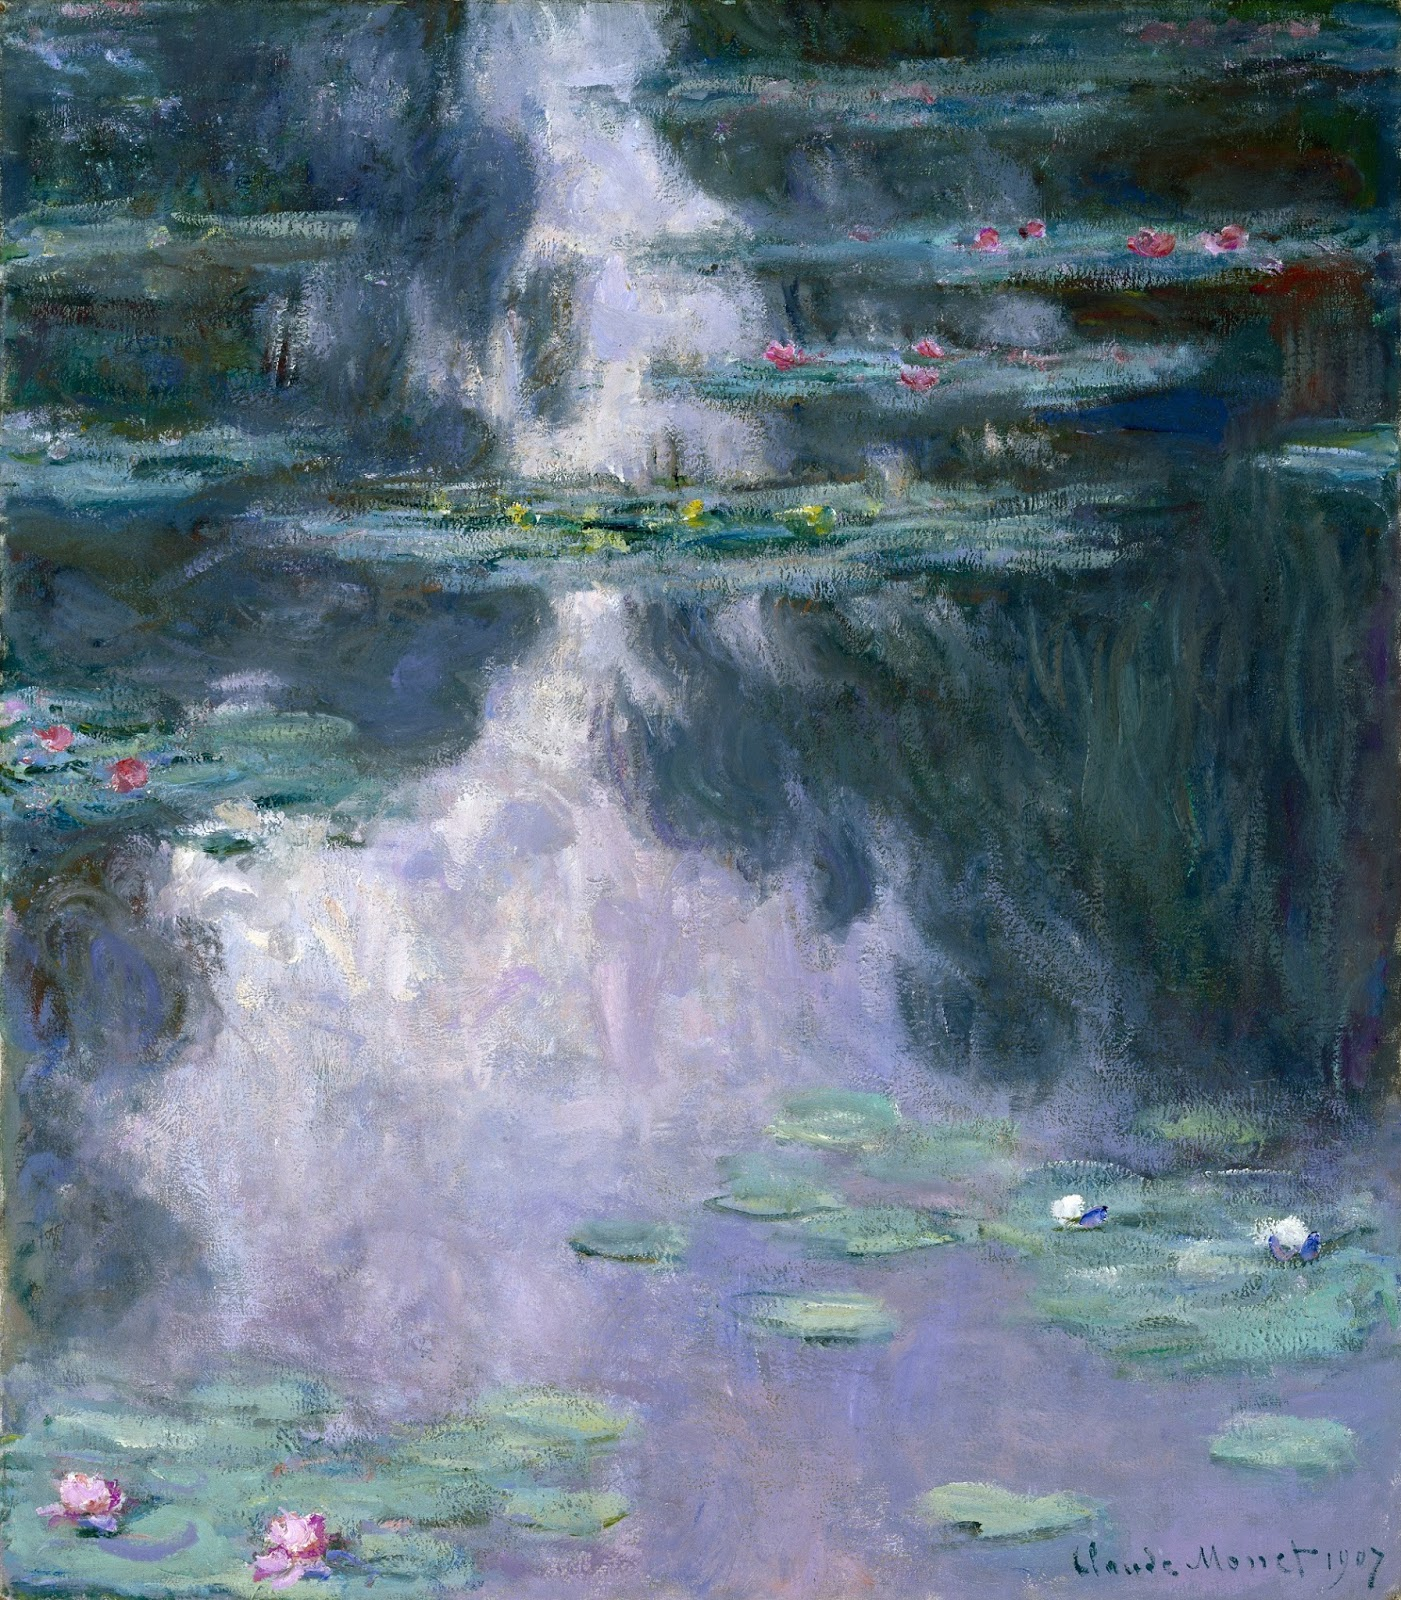 art eyewitness art eyewitness review mystical landscapes from claude monet water lilies nympheacuteas 1907